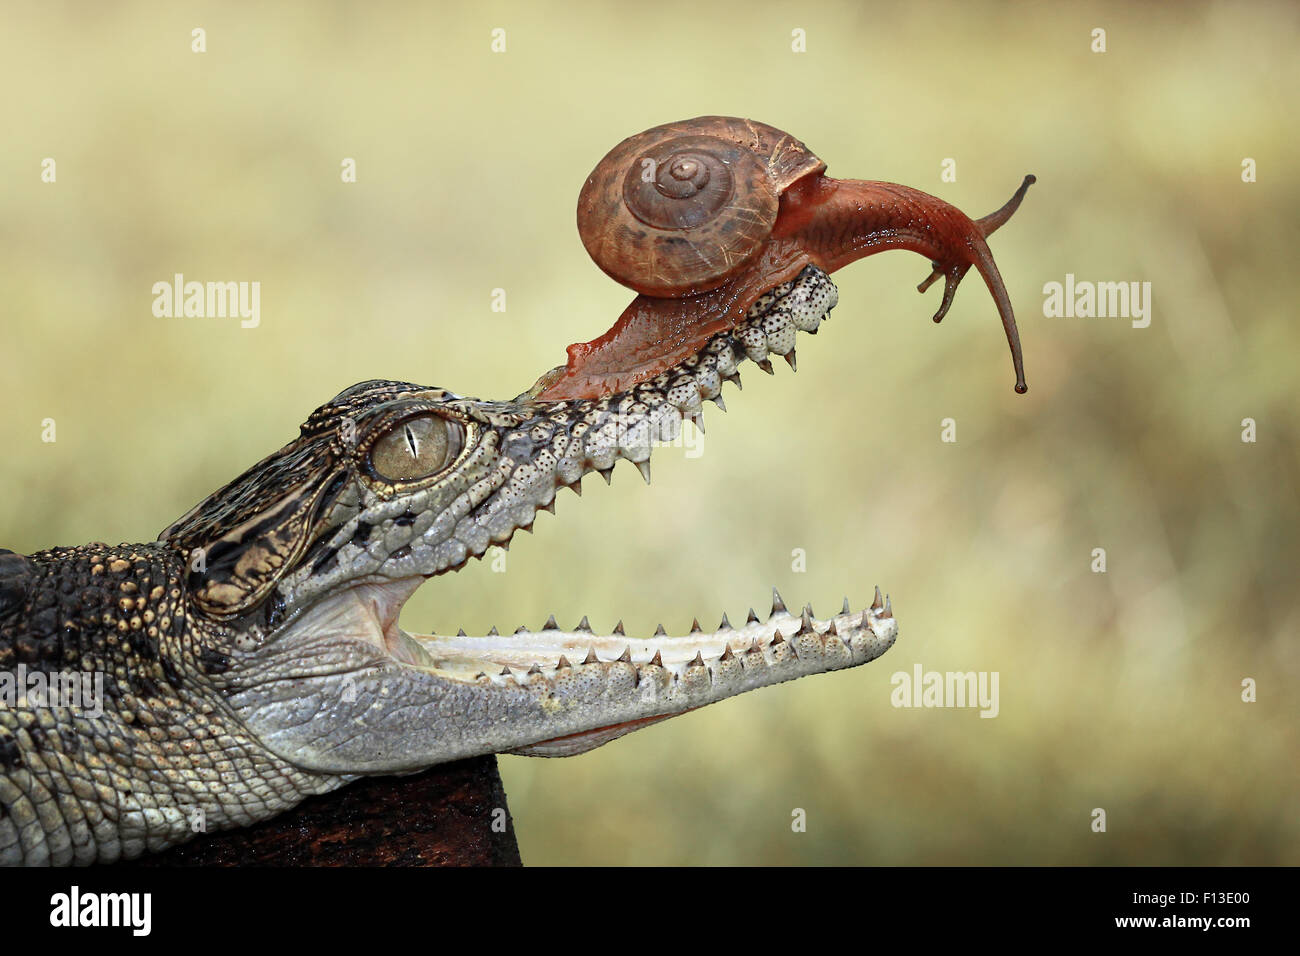 Portrait of a snail sitting on baby crocodile's mouth - Stock Image